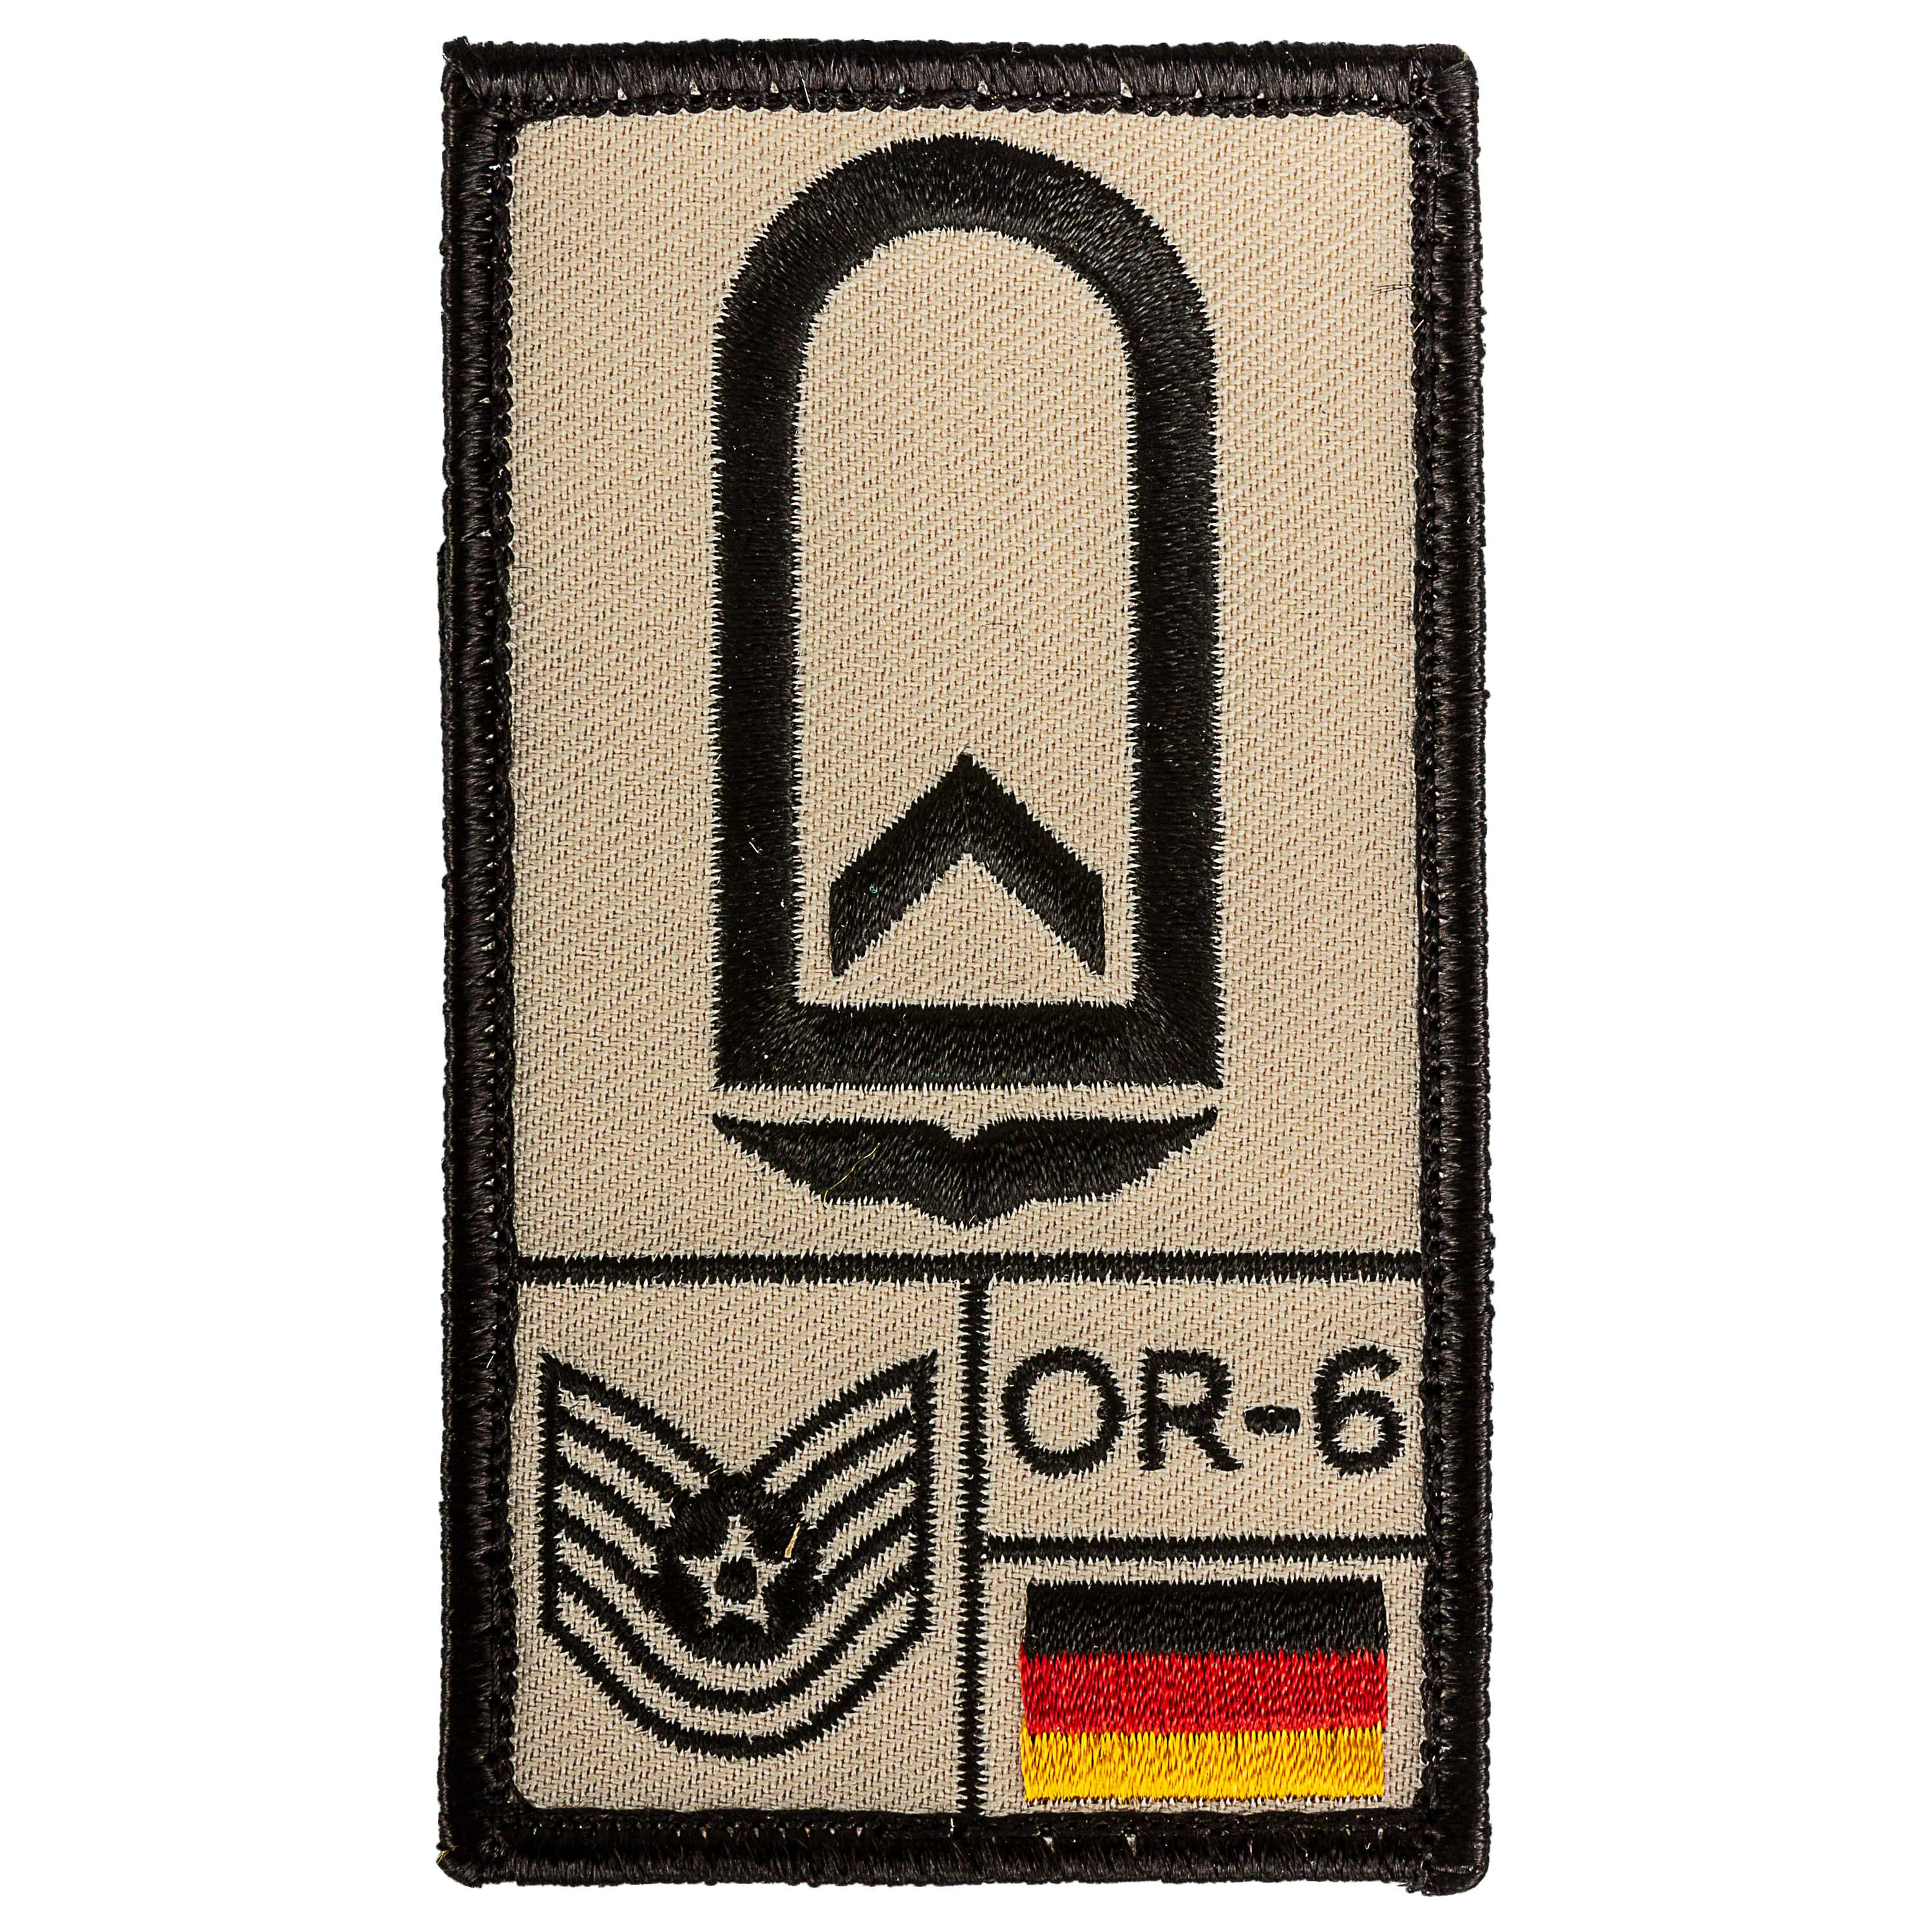 Café Viereck Rank Patch Feldwebel Luftwaffe sand